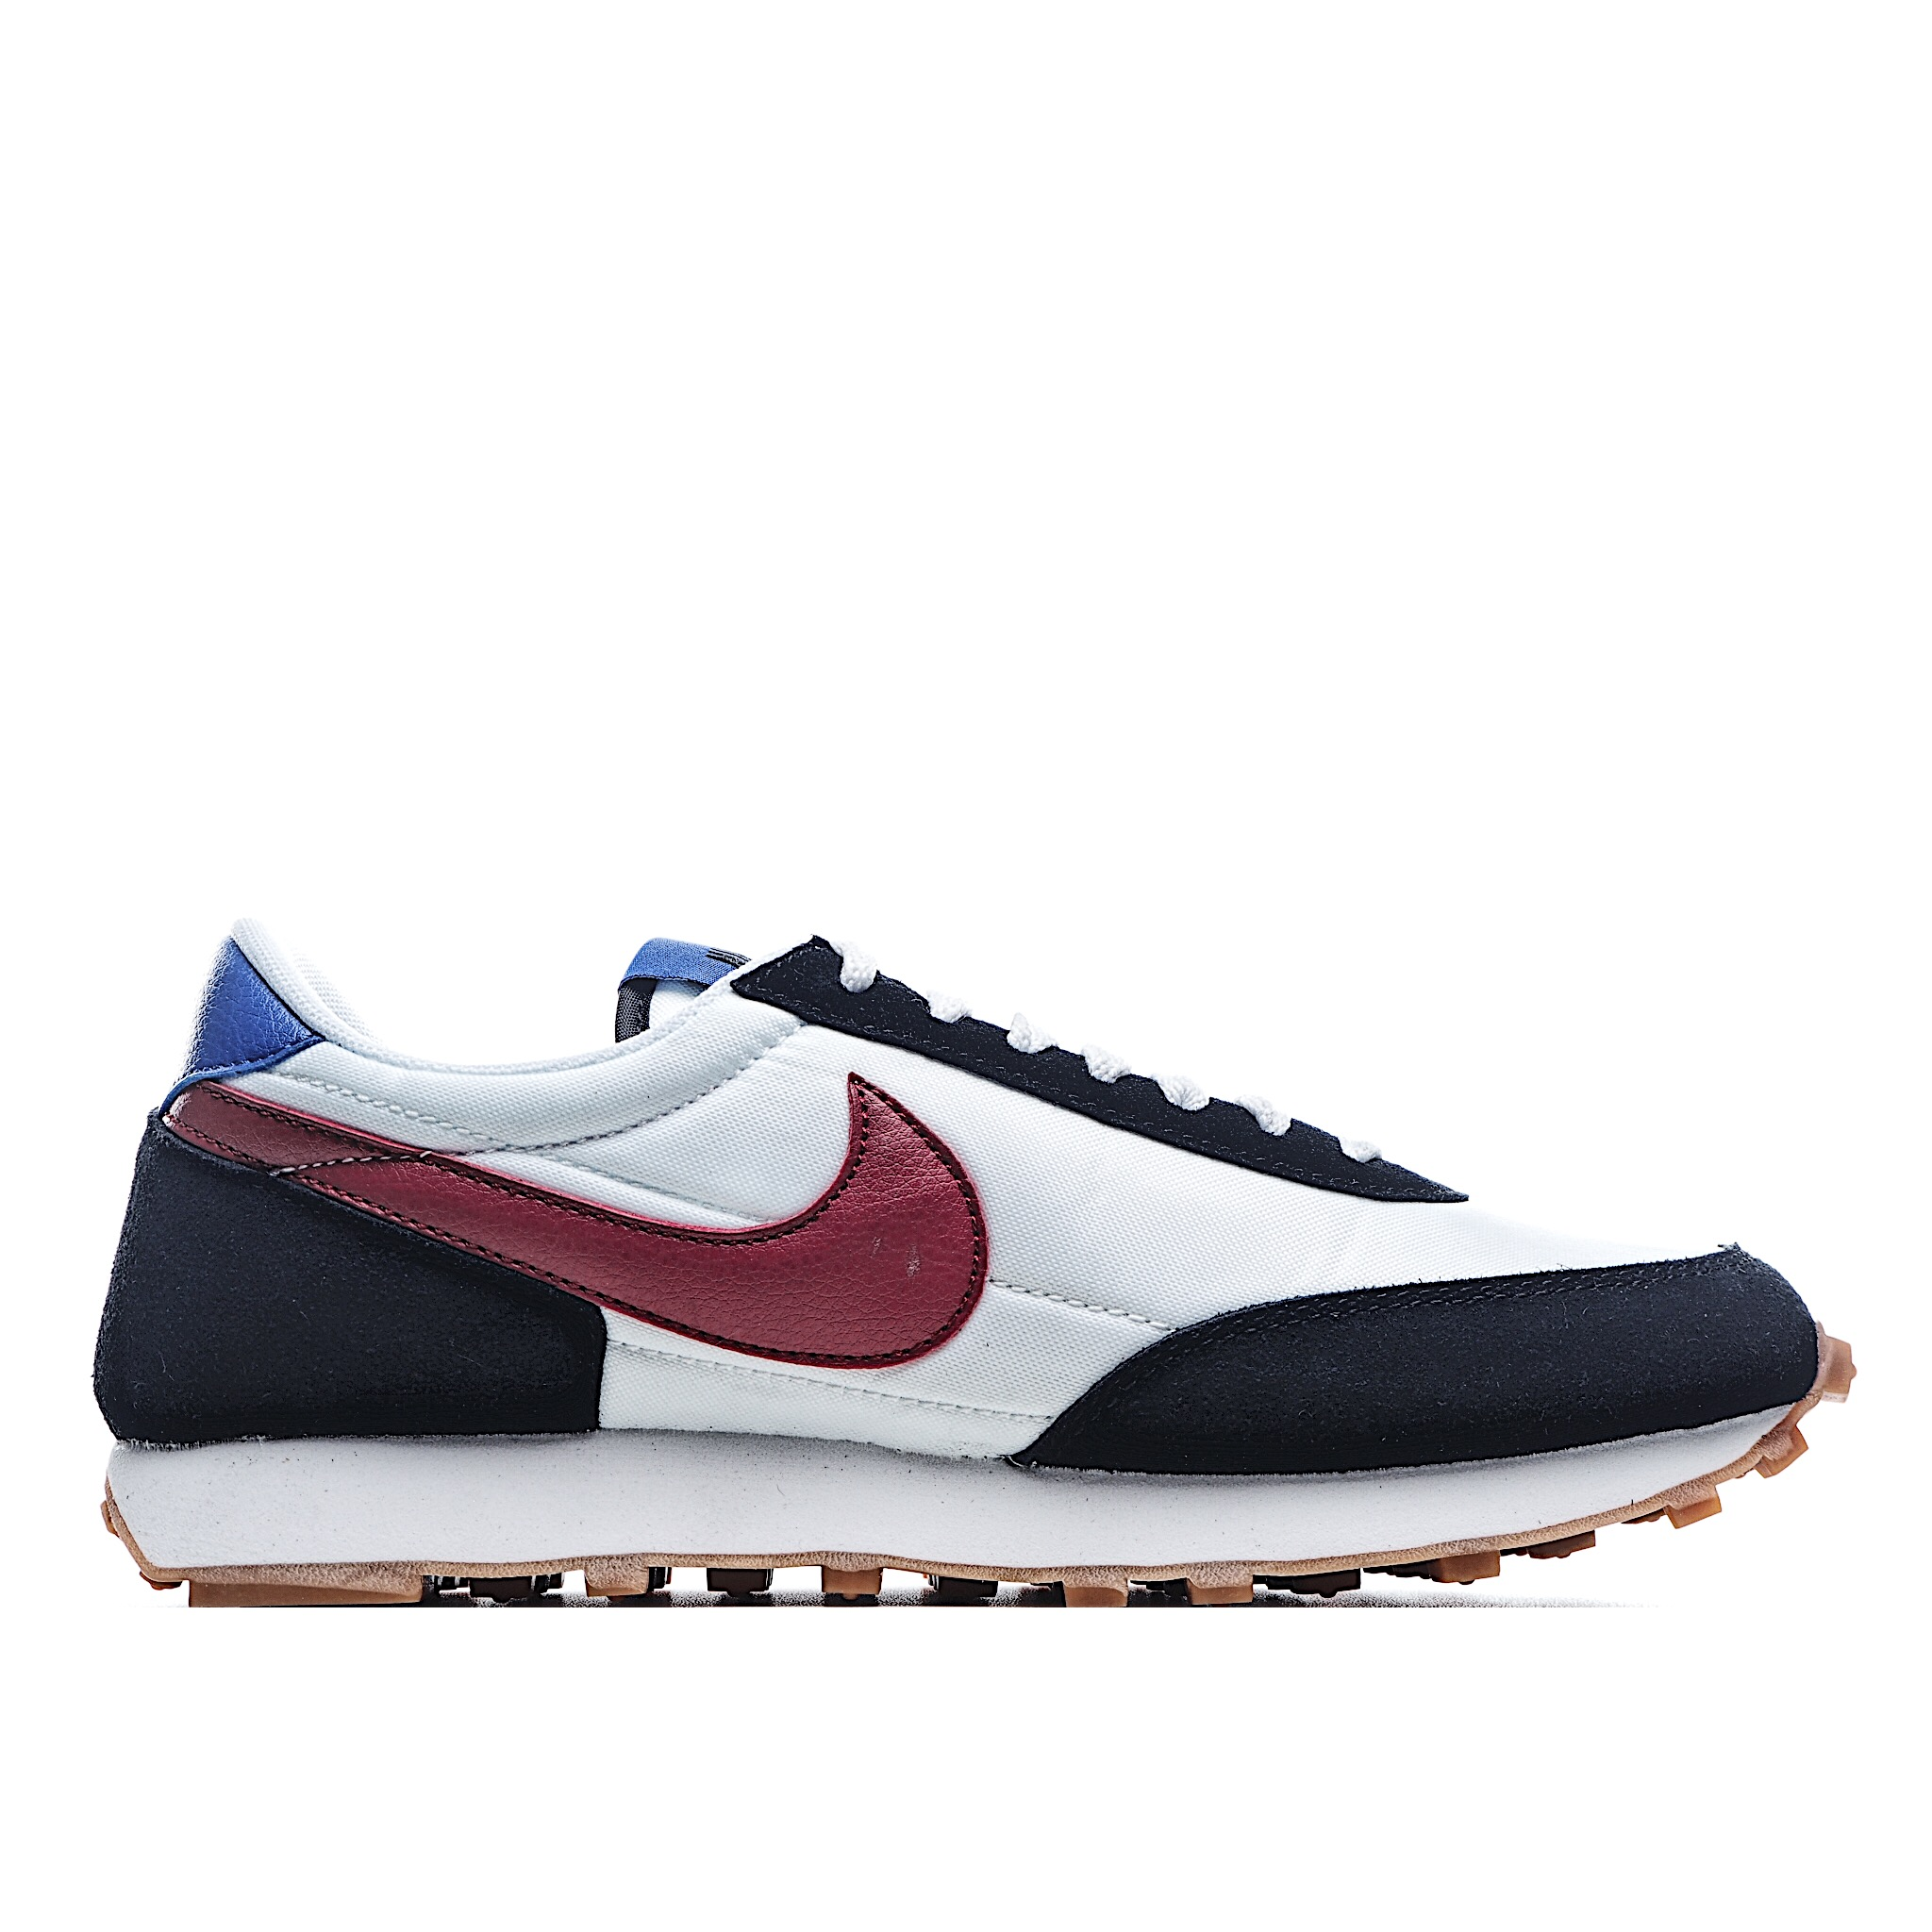 Nike Daybreak SP black and white red